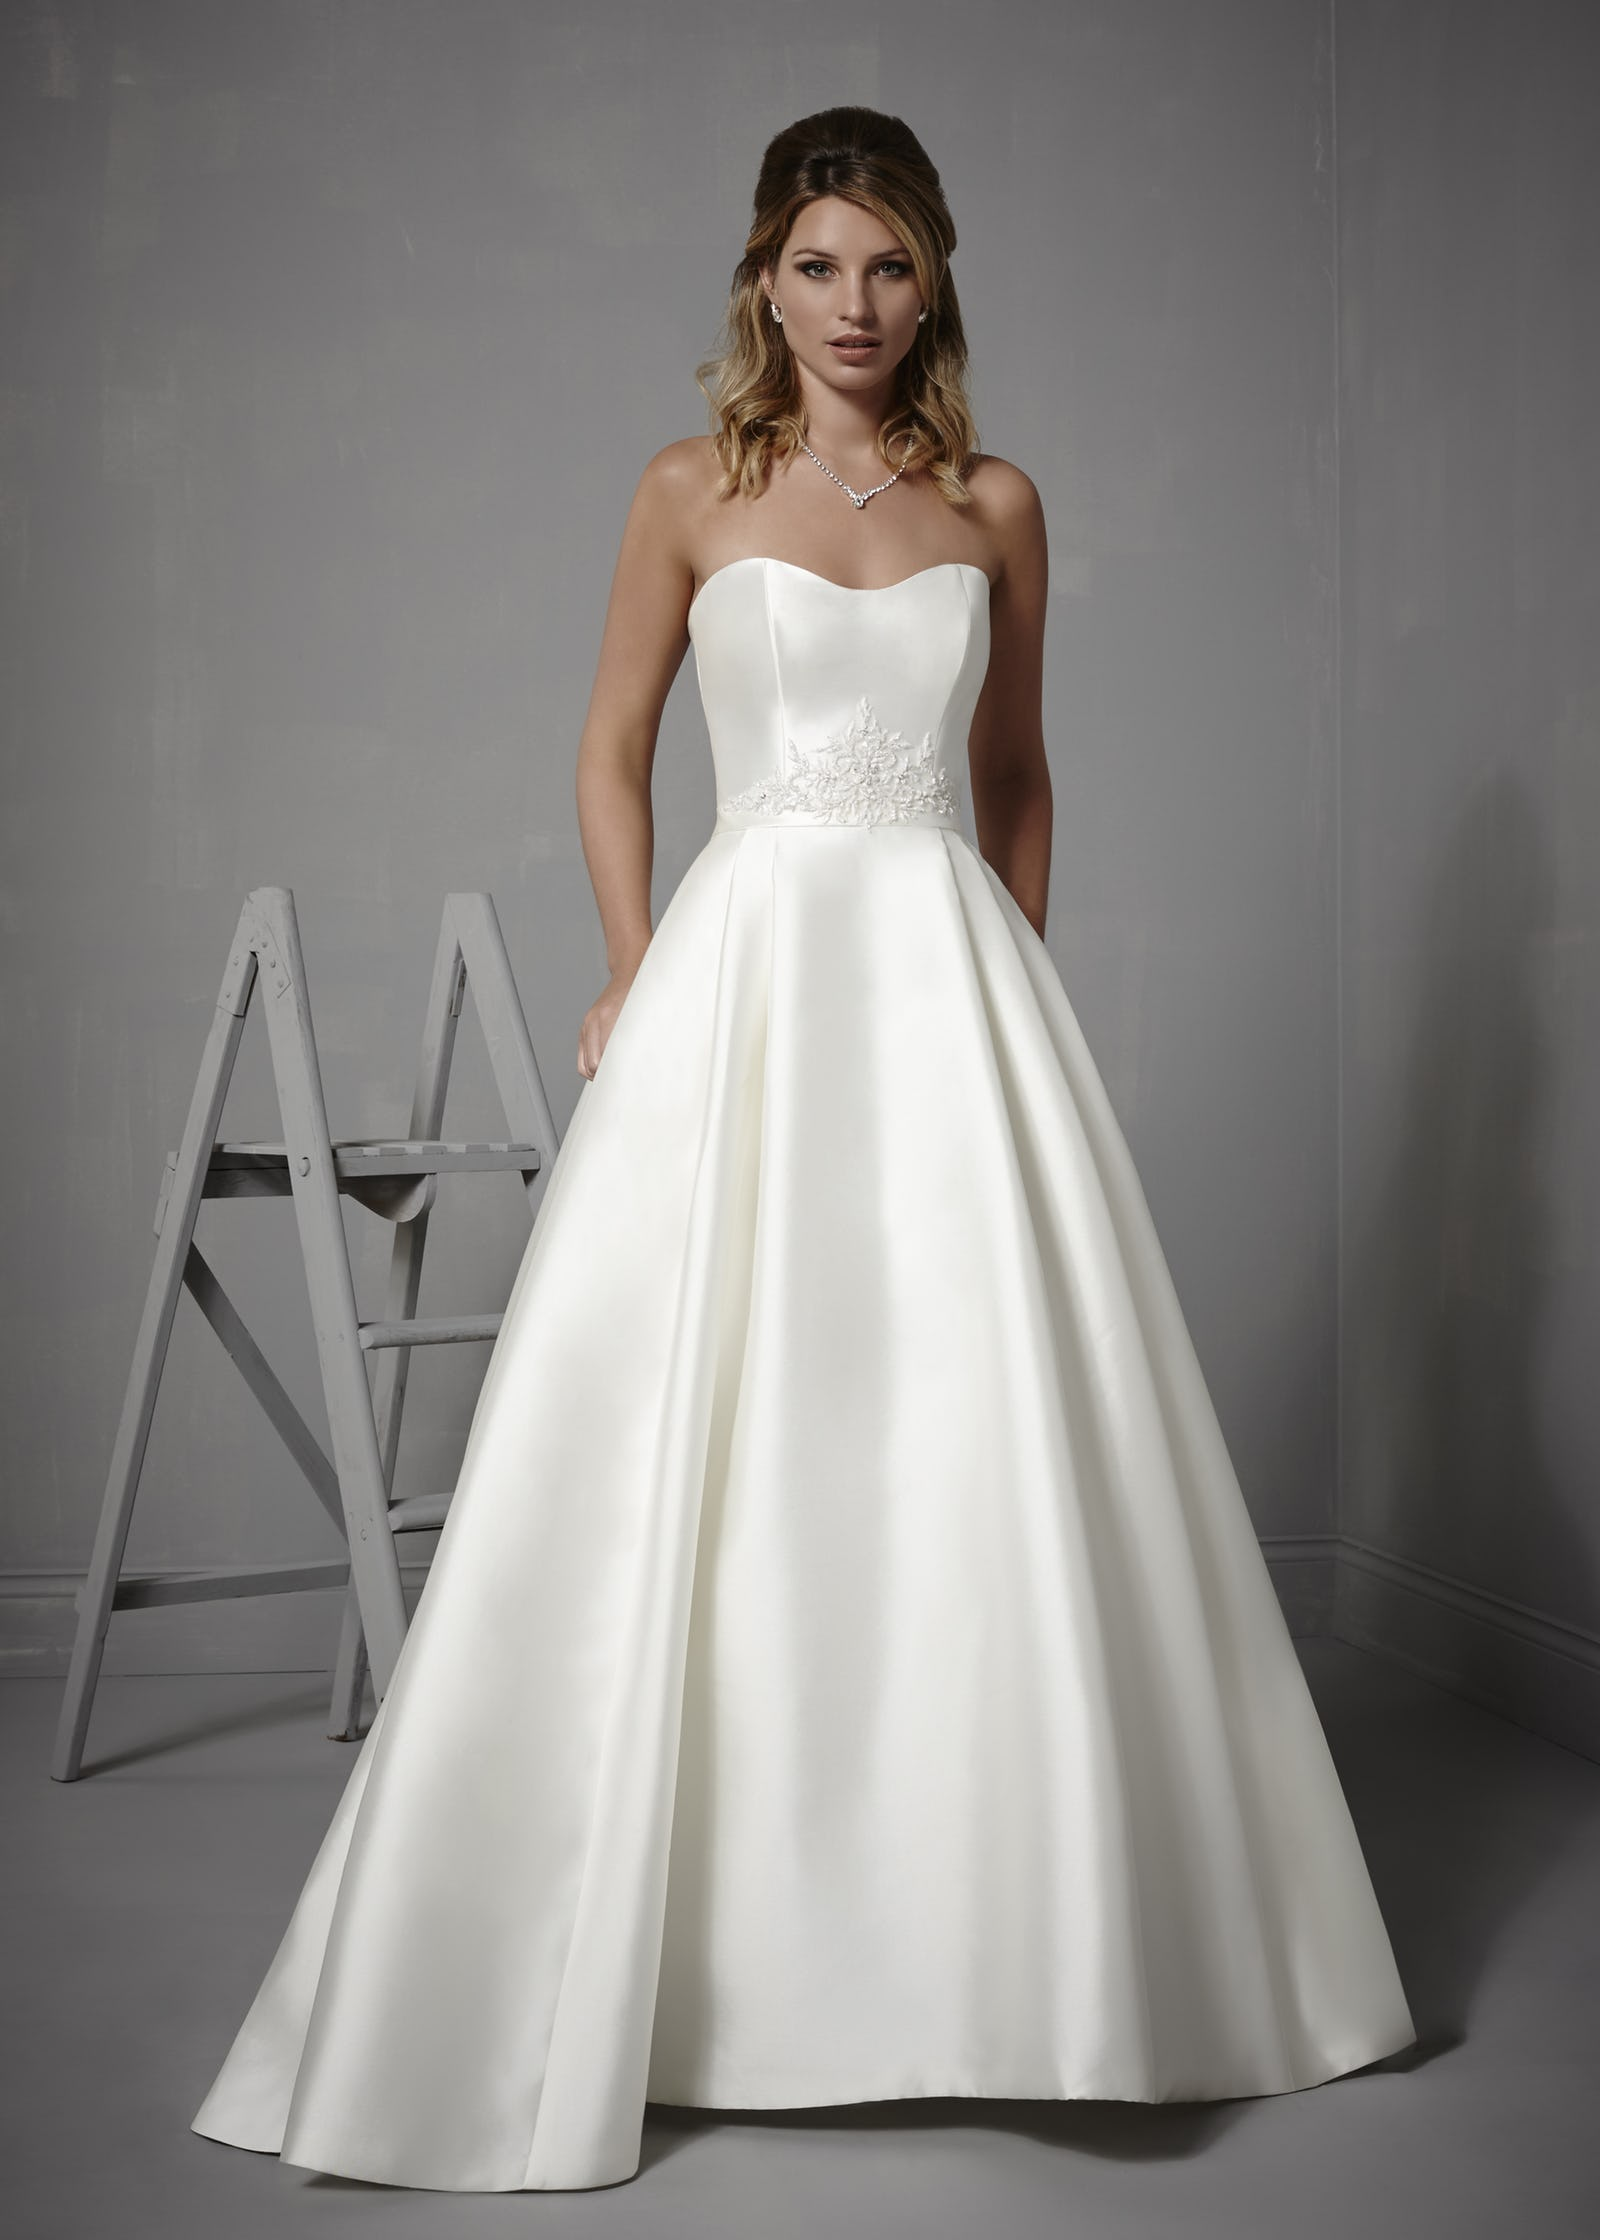 Bern Romantica Bridal dress at the Kent Wedding Centre